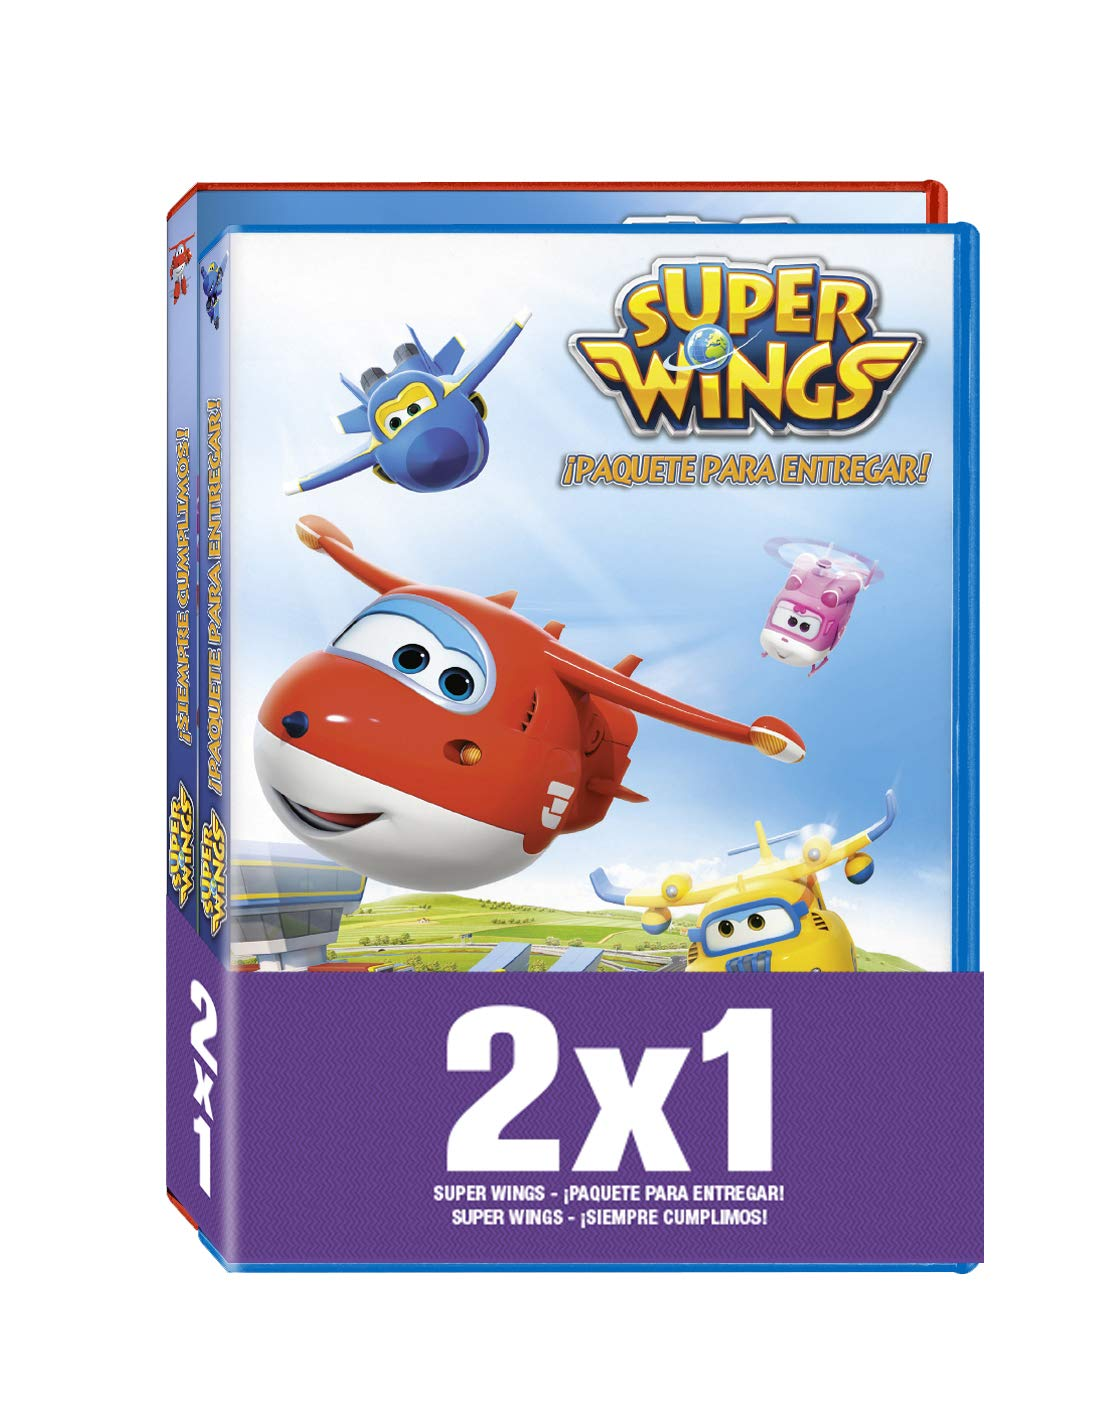 Pack - Super Wings: ¡Paquete Para Entregar! / ¡Siempre Cumplimos! DVD: Amazon.es: Benjie Randall: Cine y Series TV